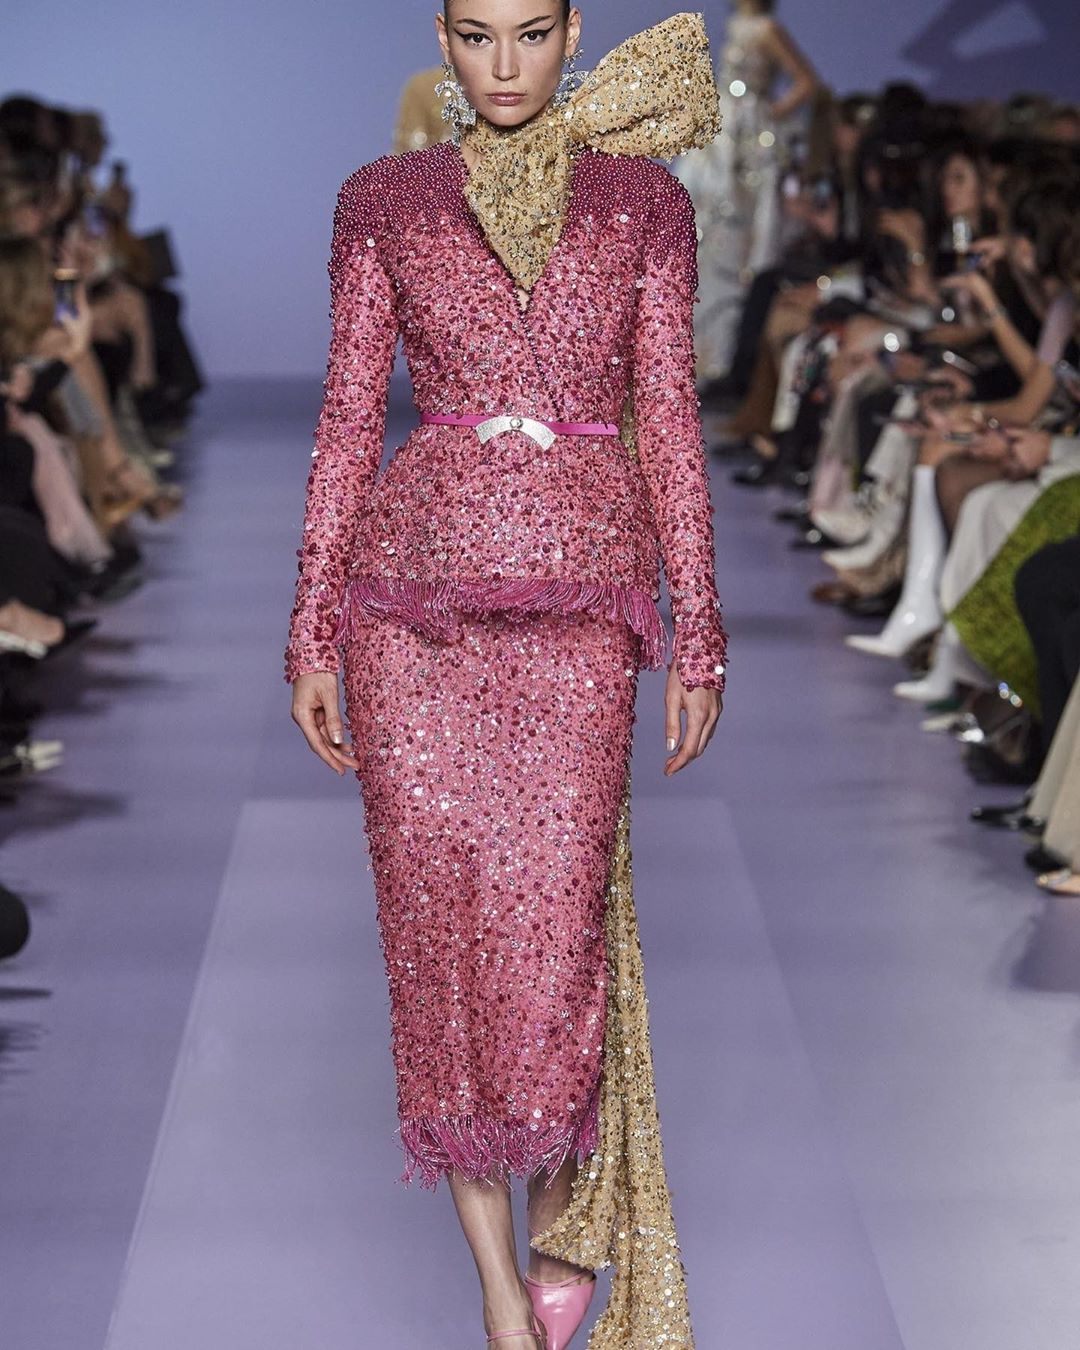 Dark Pink Sequin Short Dress With Gold Tie-up & Long Sleeves.